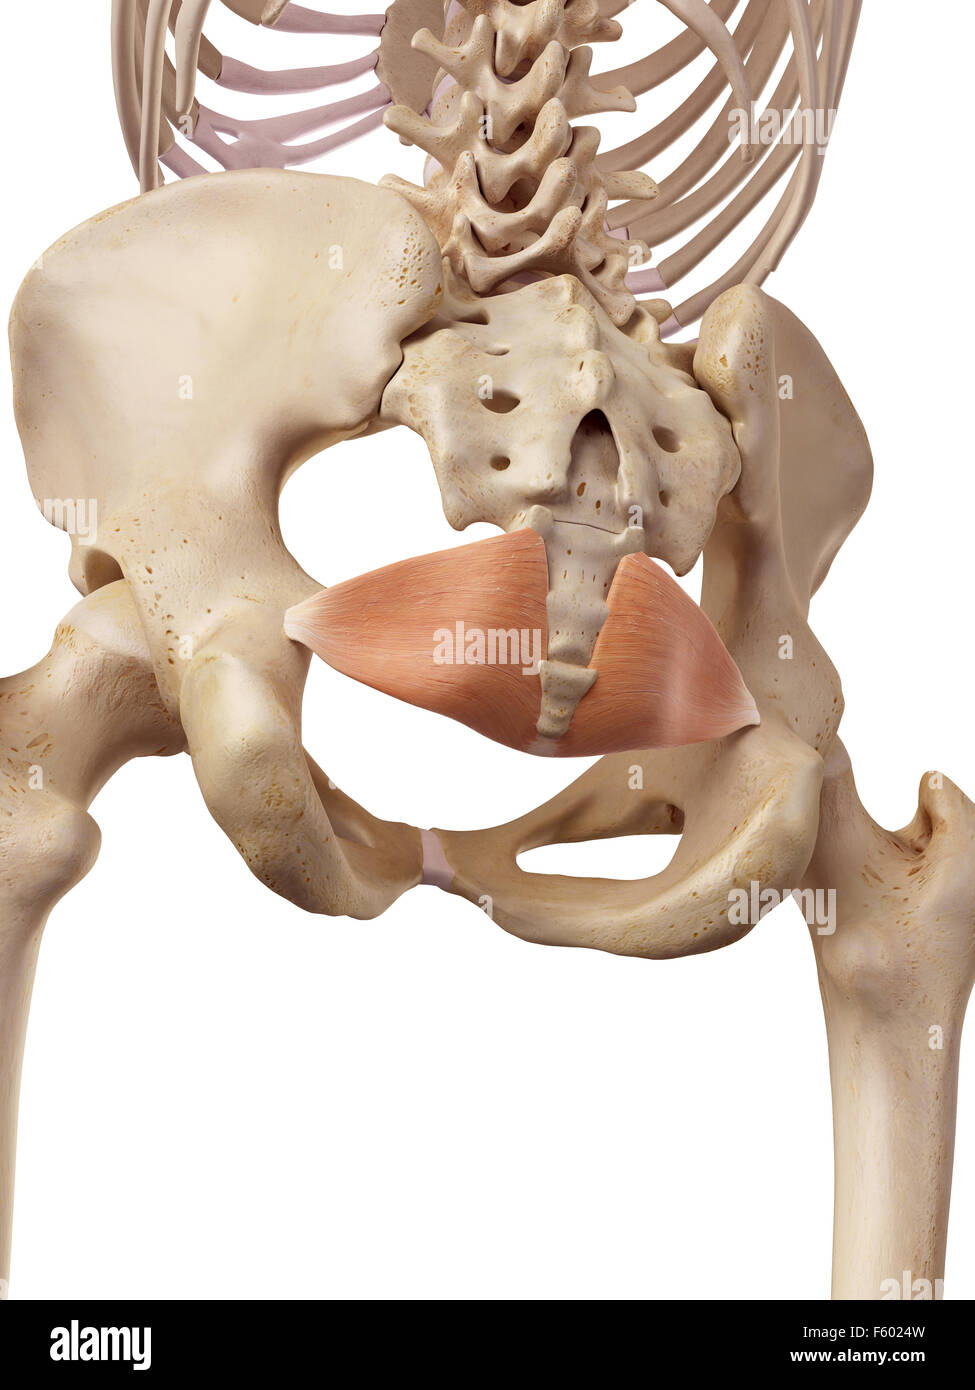 medical accurate illustration of the iliococcygeus - Stock Image